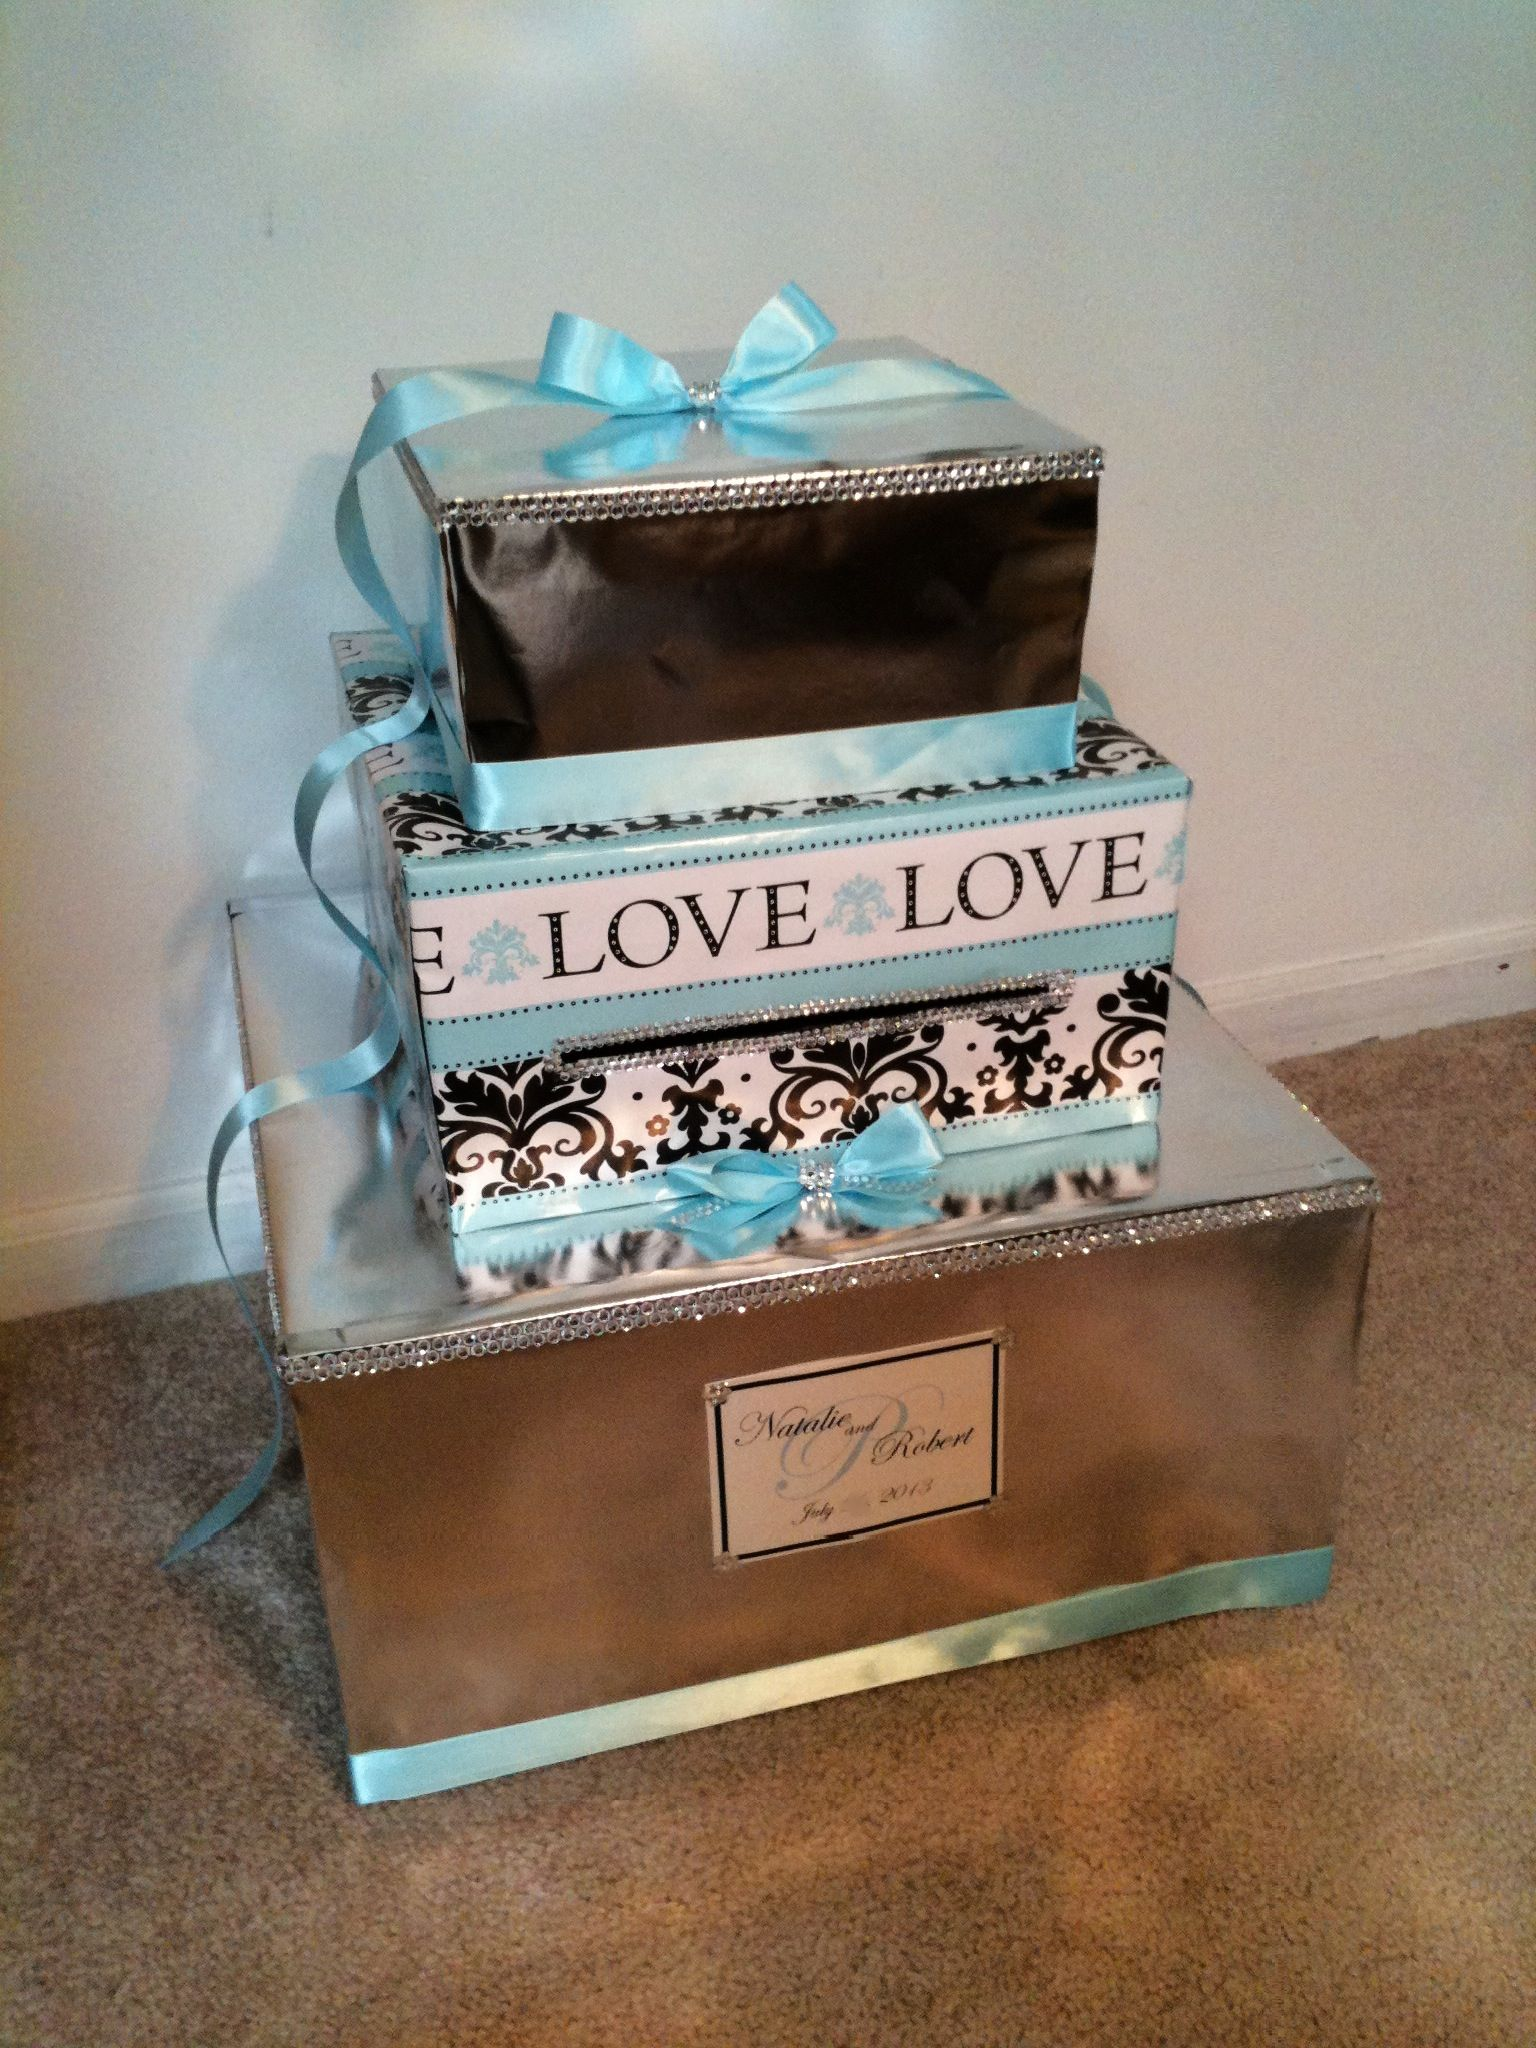 3 Tier Wedding Card Box I Made Light Blue Ribbon Gem